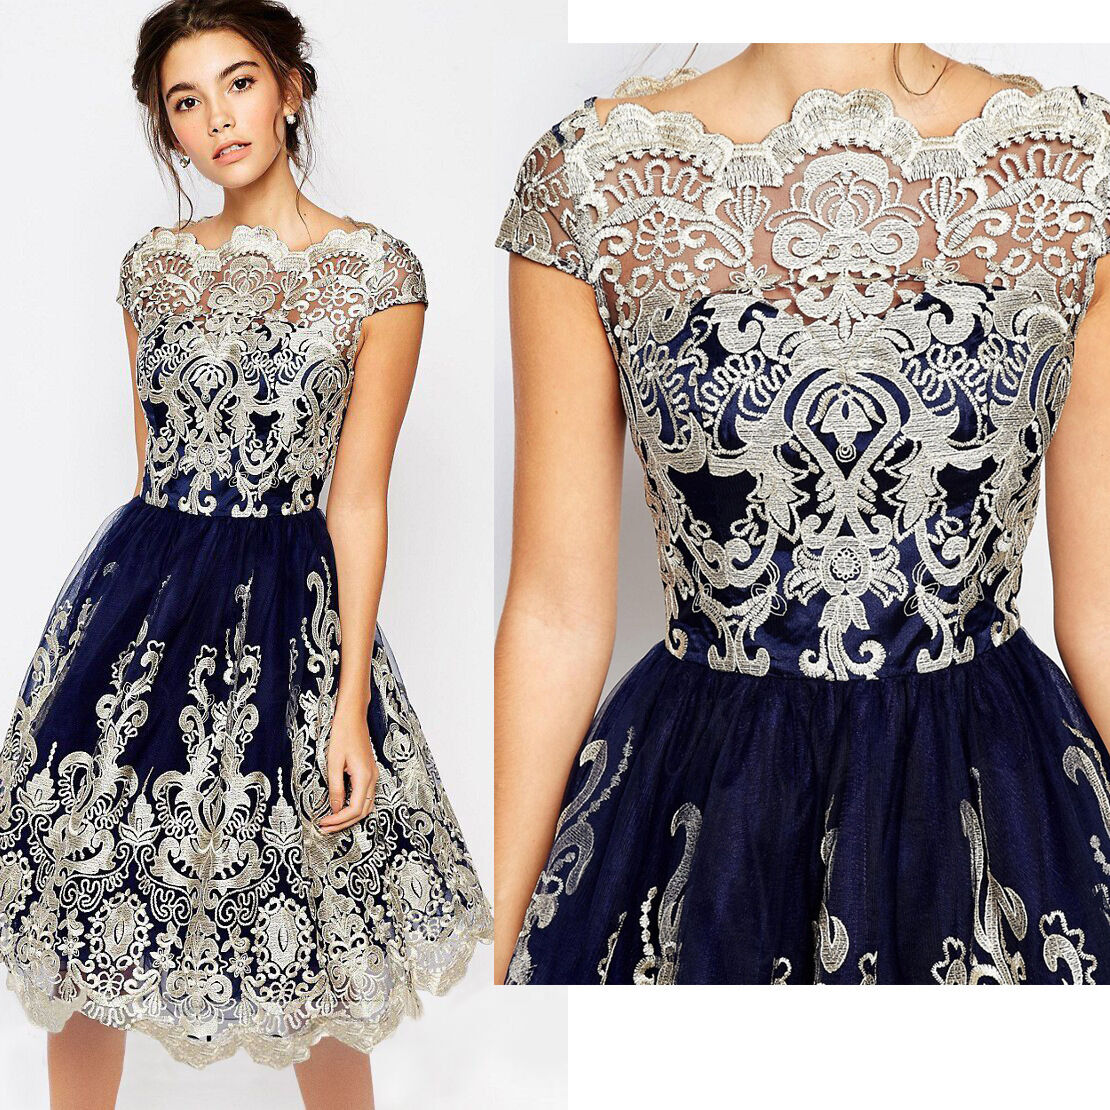 22b0b2ce54f4 Brand New Short Lace Dress Prom Evening Party Cocktail Wedding Dresses